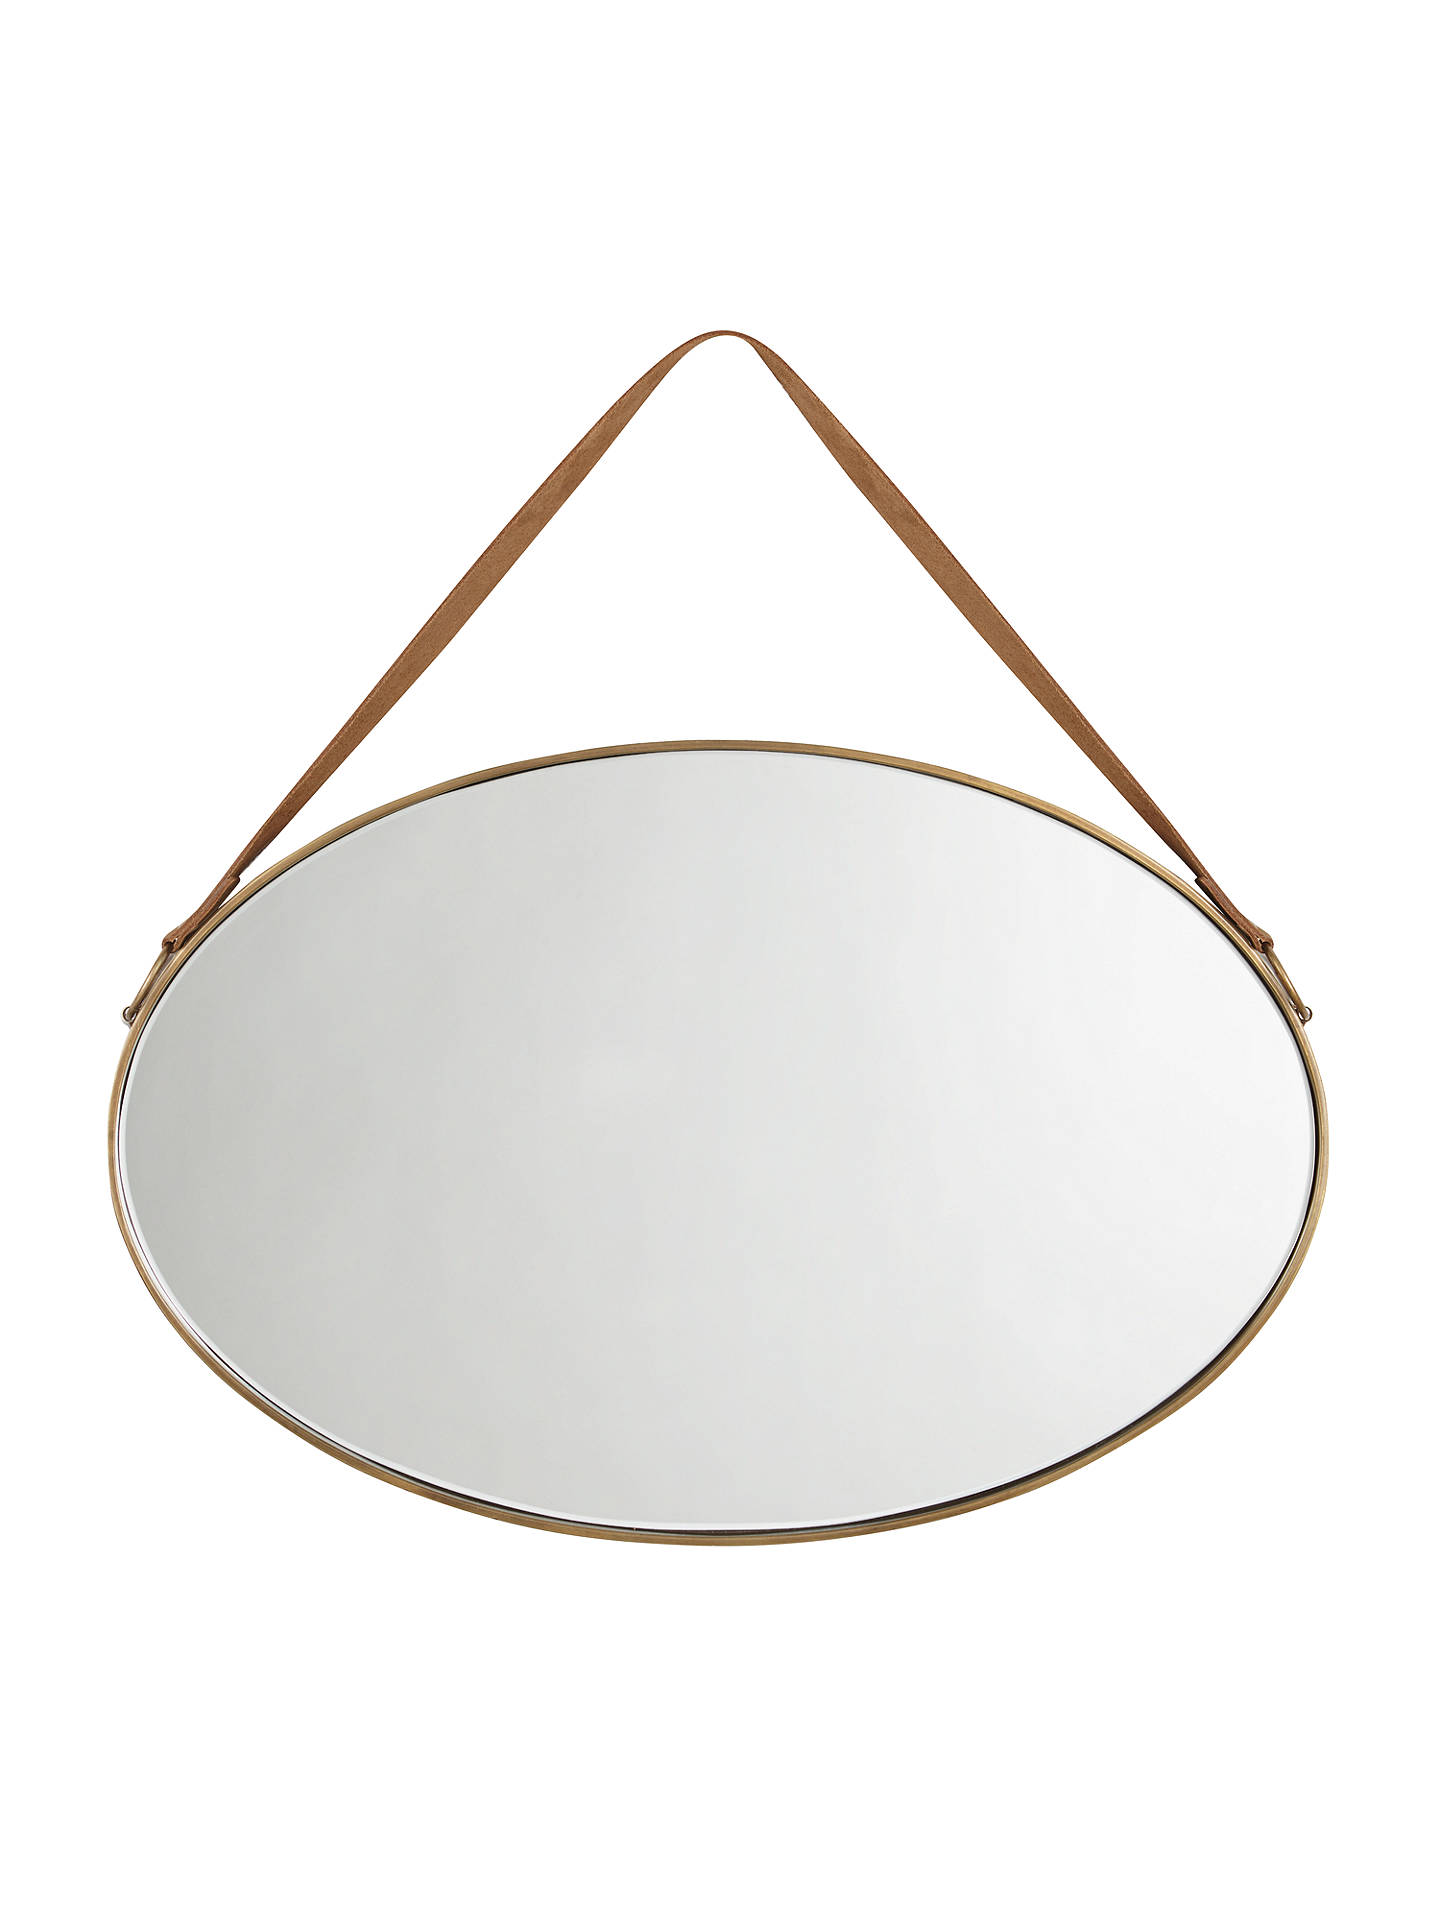 John Lewis Partners Ronda Oval Hanging Mirror With Strap 54 X